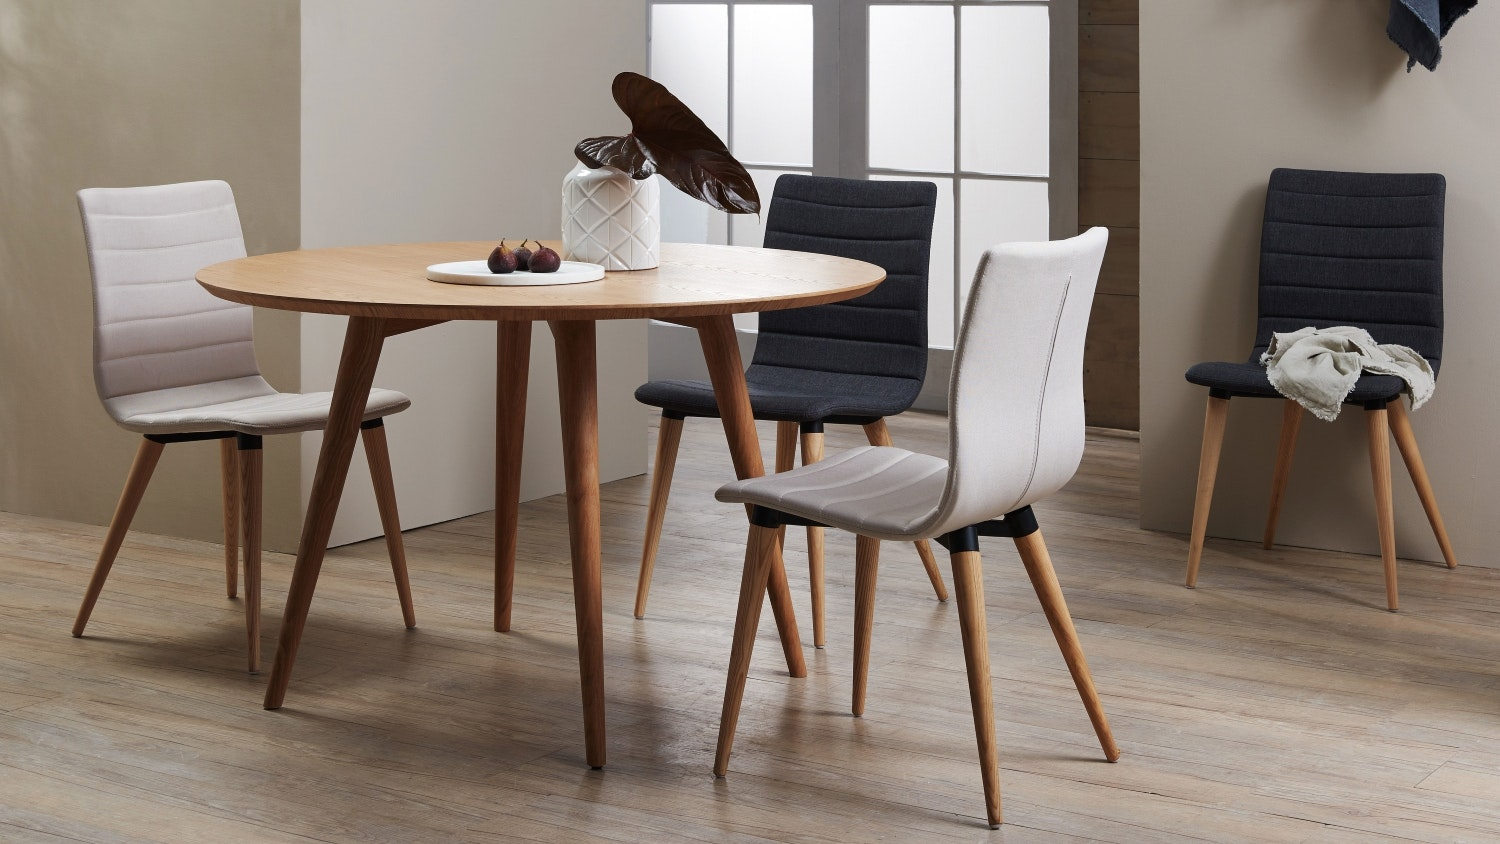 Etonnant Marli Round Dining Table